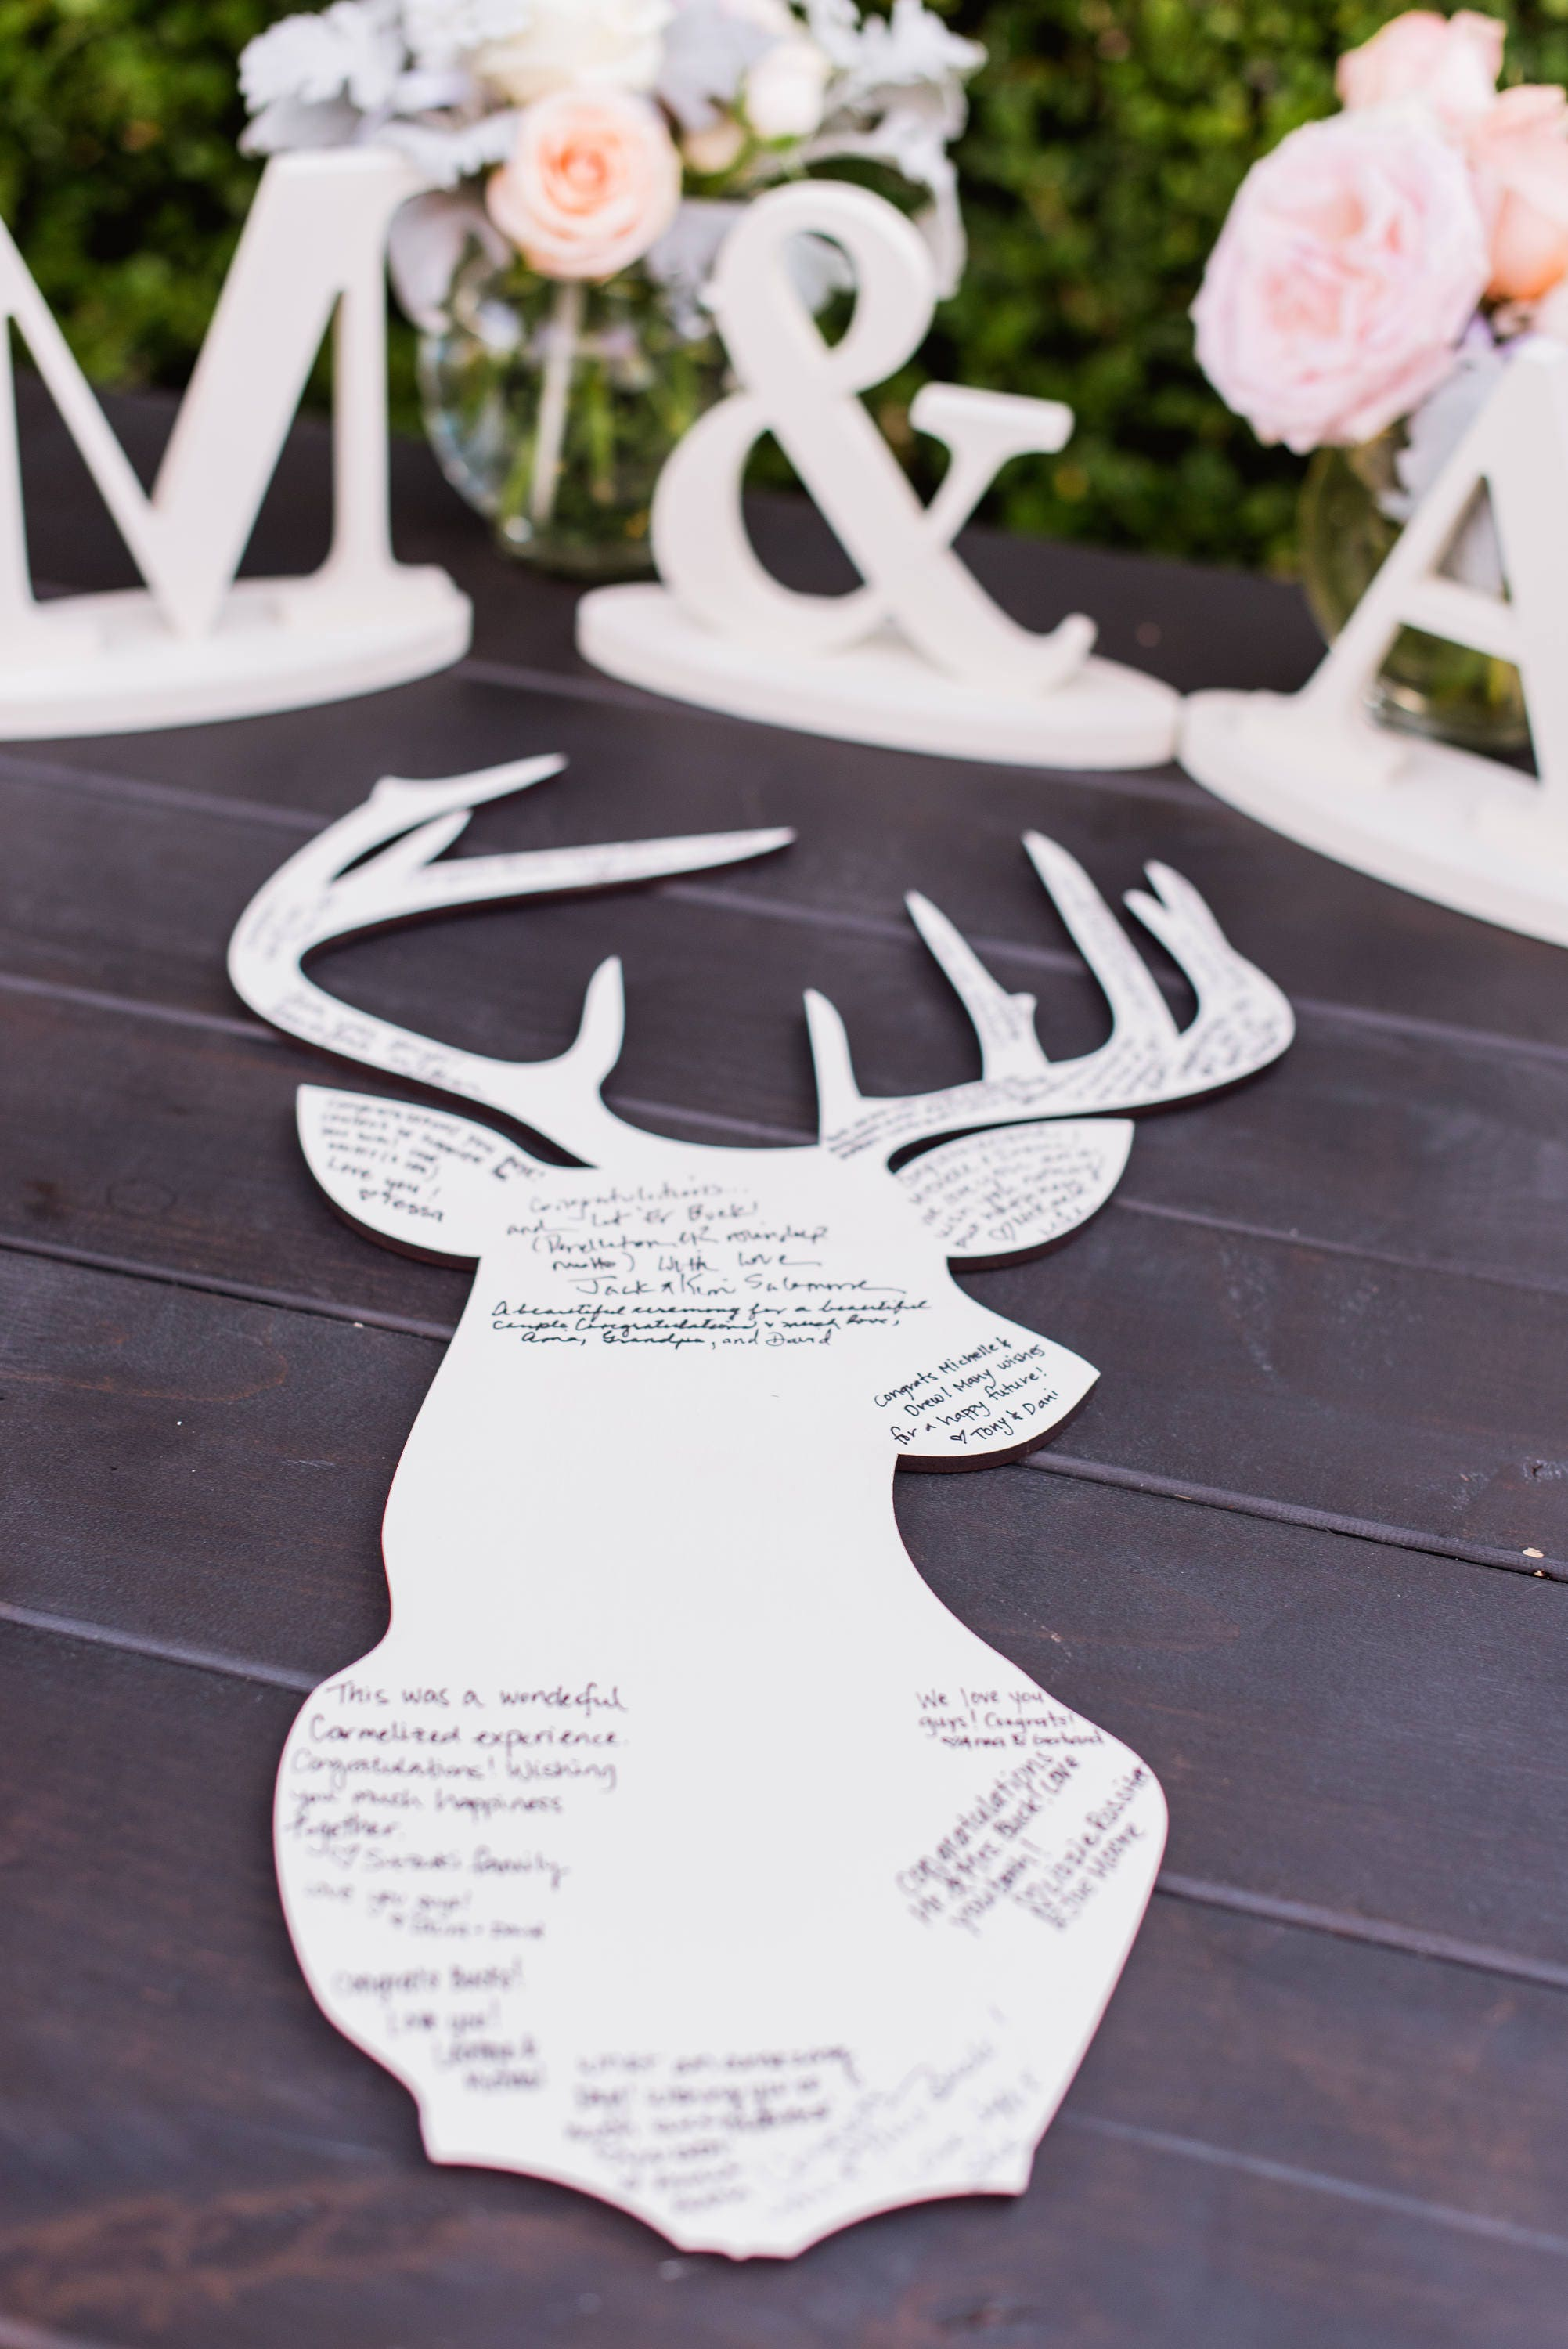 Wedding Guest Book Deer Silhouette DIY or Painted Guestbook